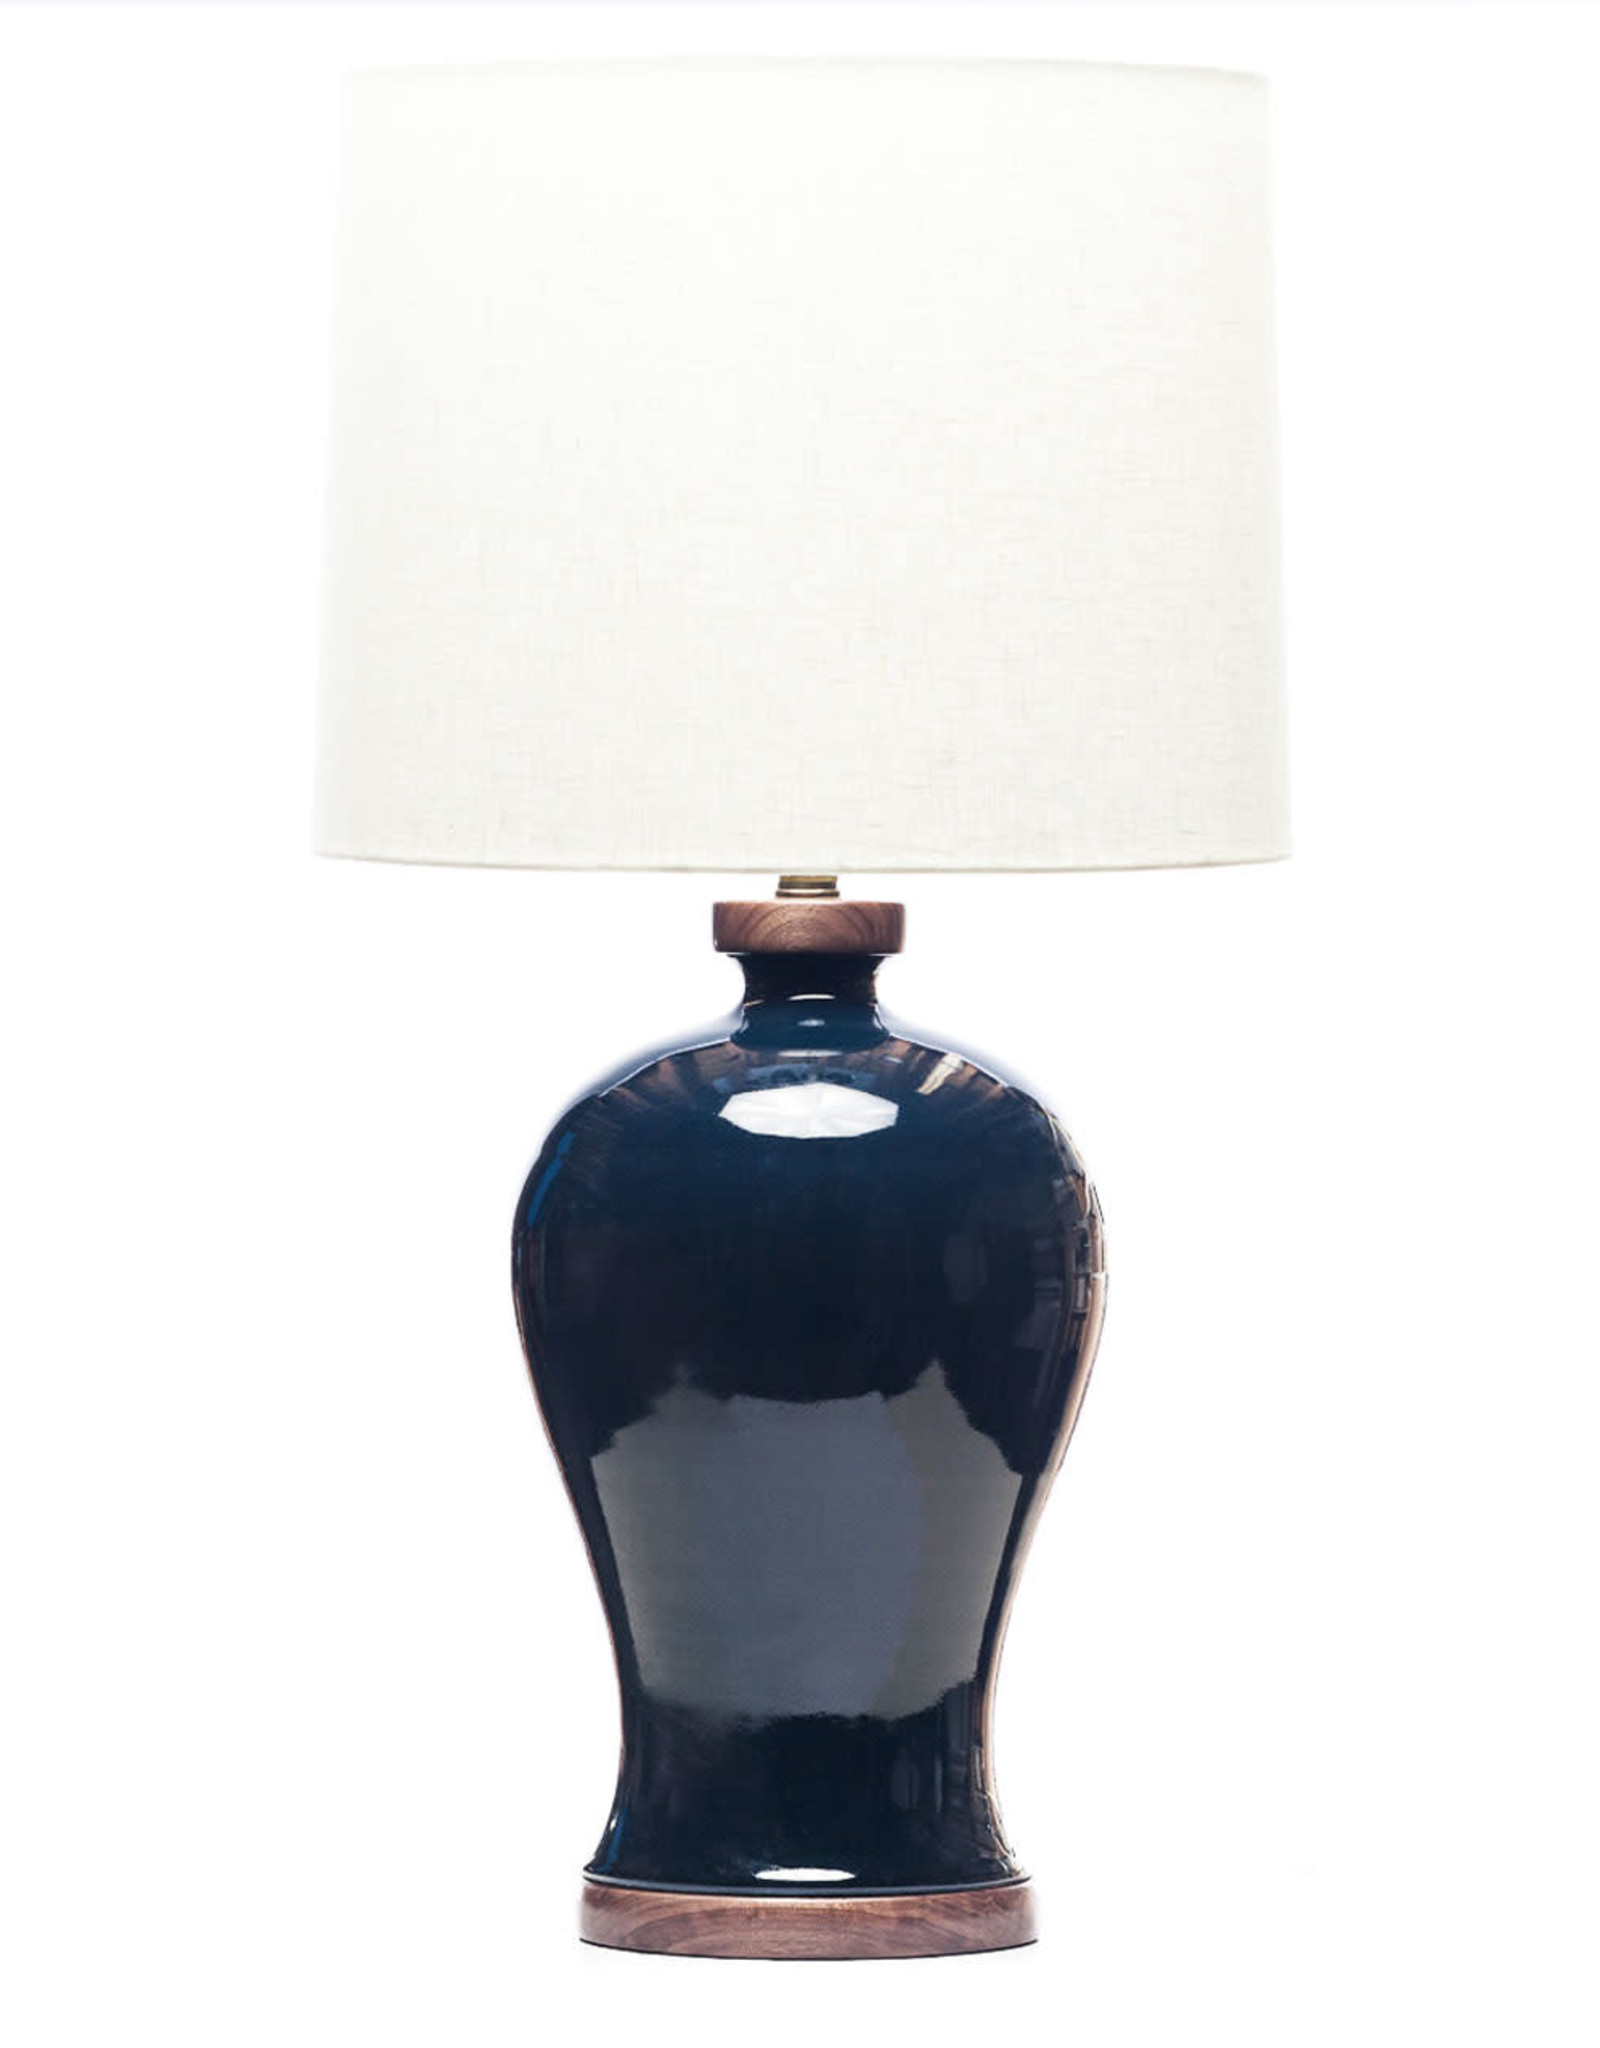 Lawrence & Scott Dashiell Table Lamp in Steel Blue Crackle with Walnut Base